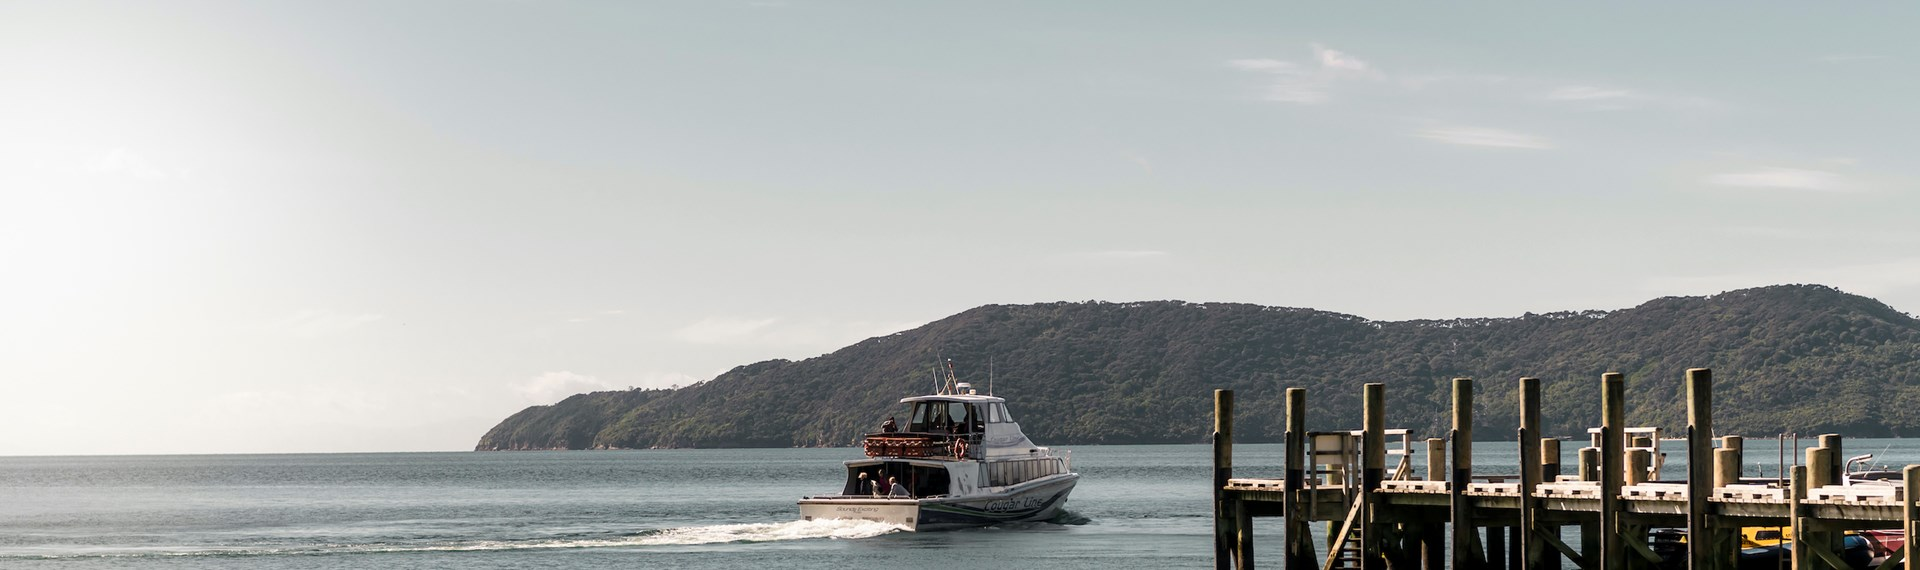 A Cougar Line boat departs the jetty at Ship Cove/Meretoto in the outer Queen Charlotte Sound/Tōtaranui in the Marlborough Sounds, New Zealand.